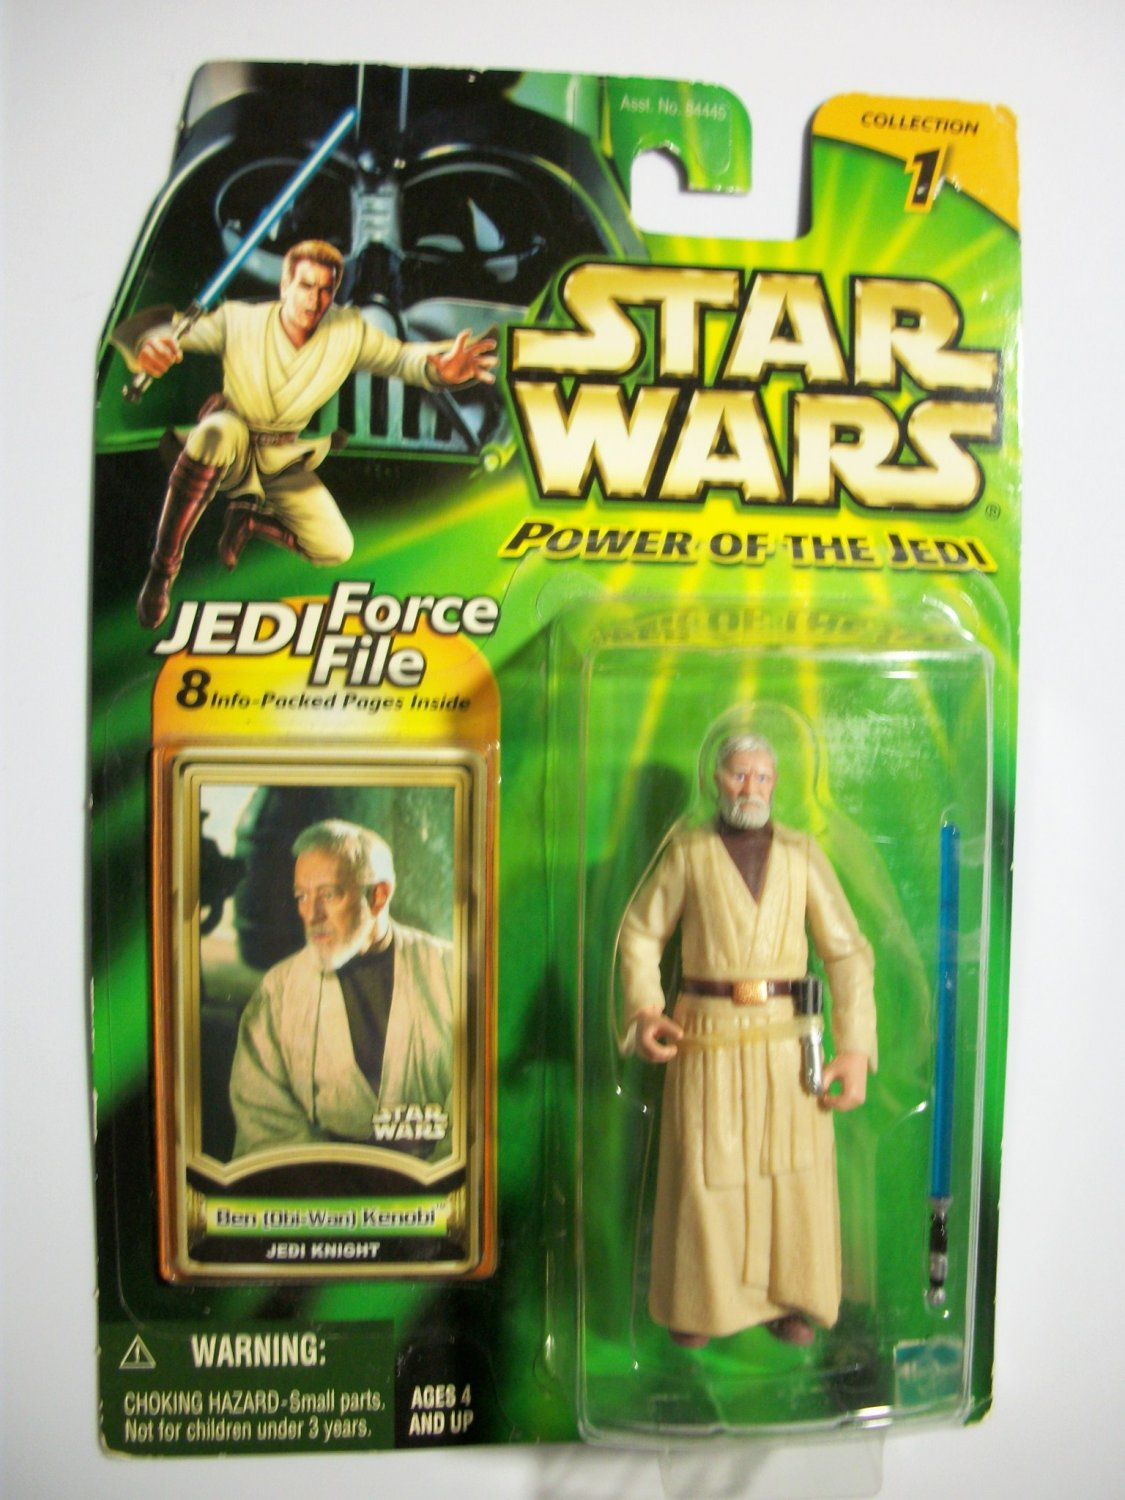 STAR WARS POTJ BEN KENOBI Action Figure